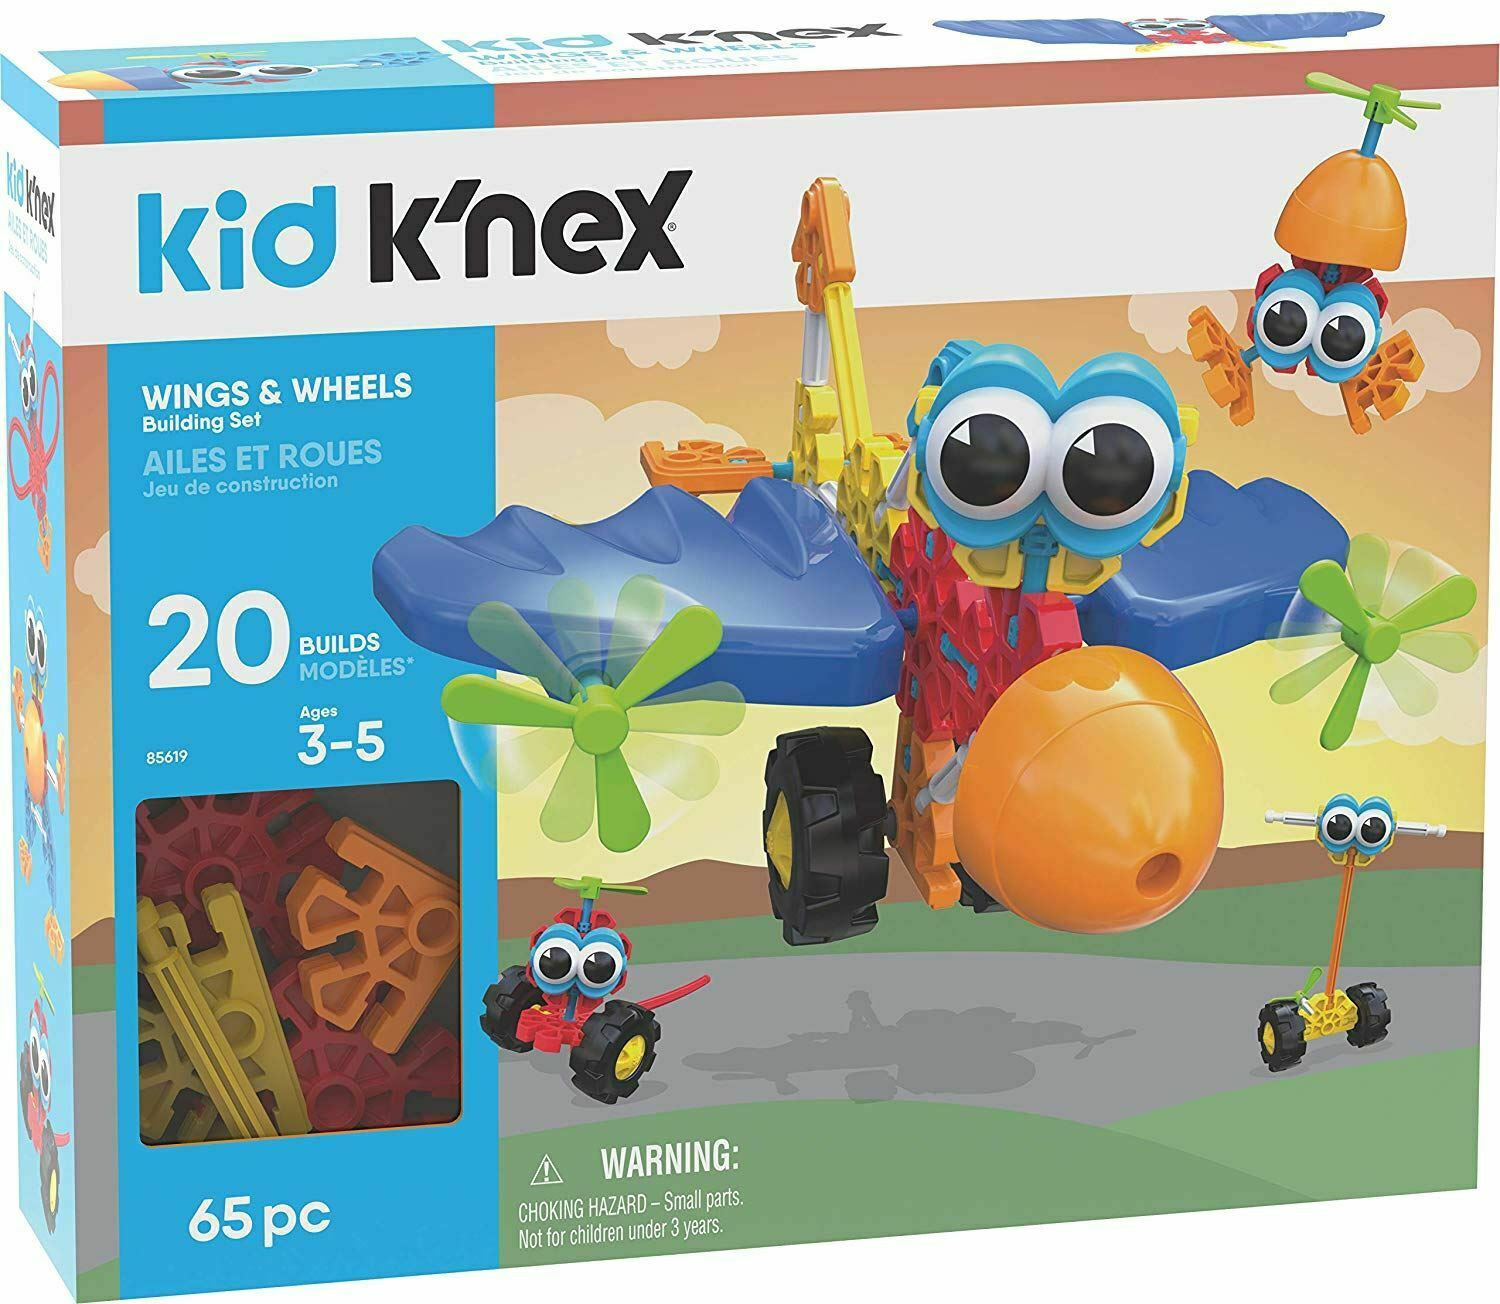 Kid K'nex Wings & Wheels 20 Model Building Set 65 Pieces